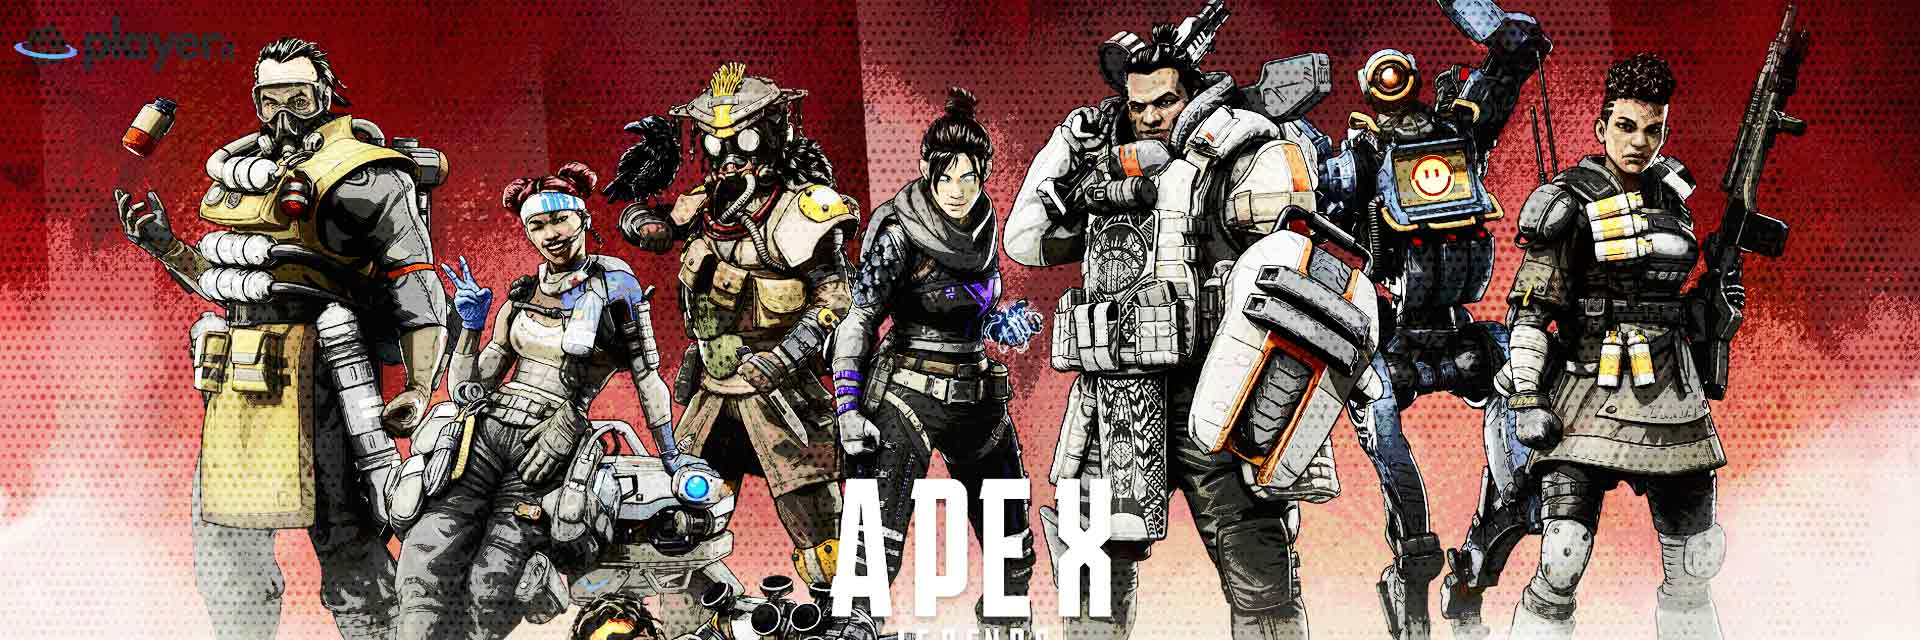 apex legends wallaper in HD